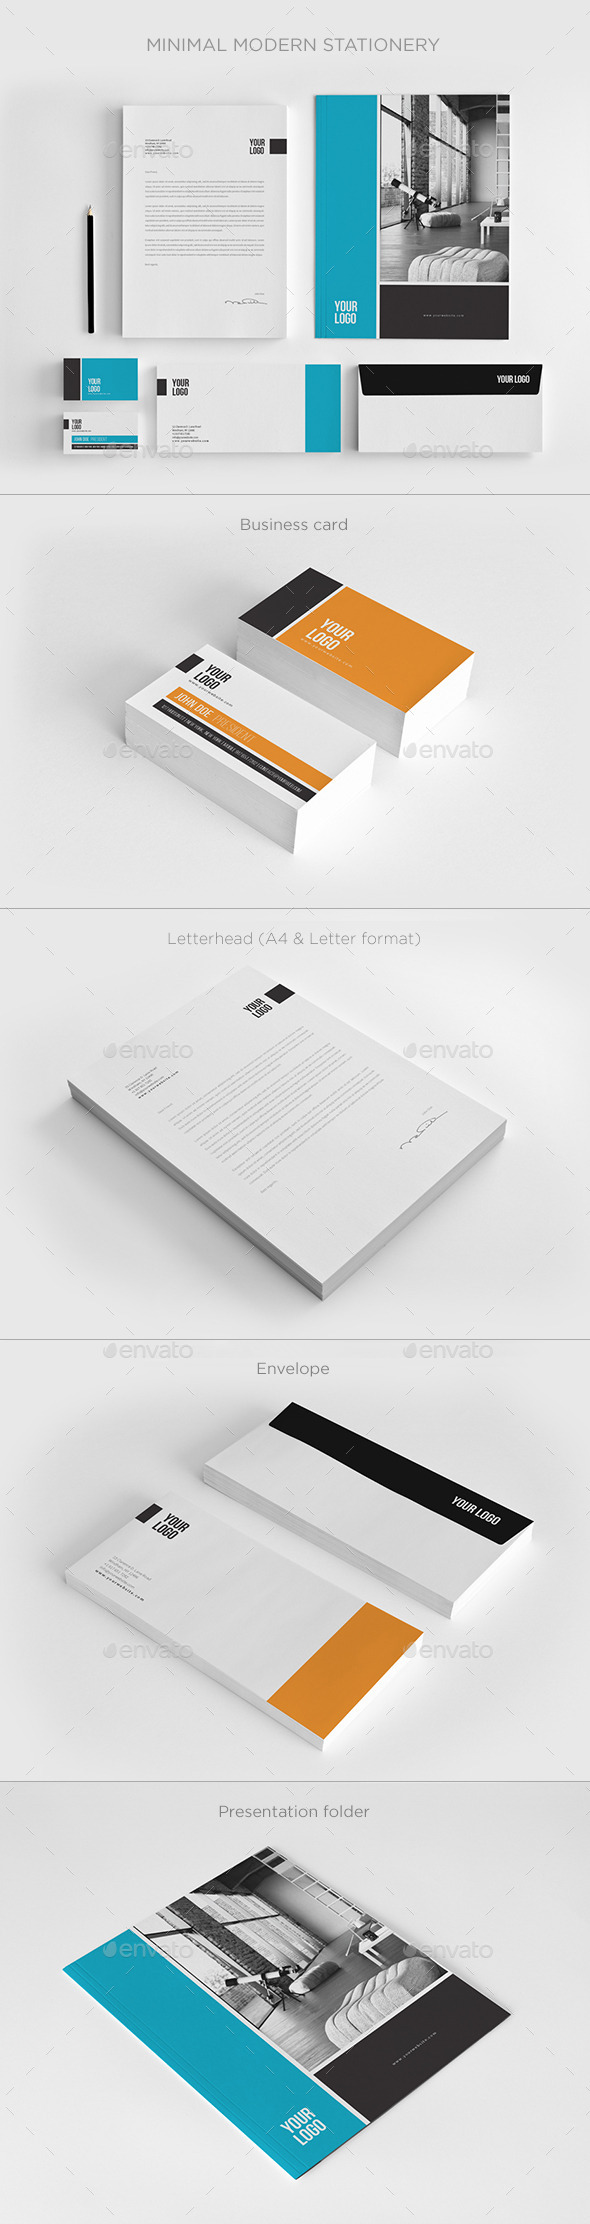 GraphicRiver Minimal Modern Stationery 11158986